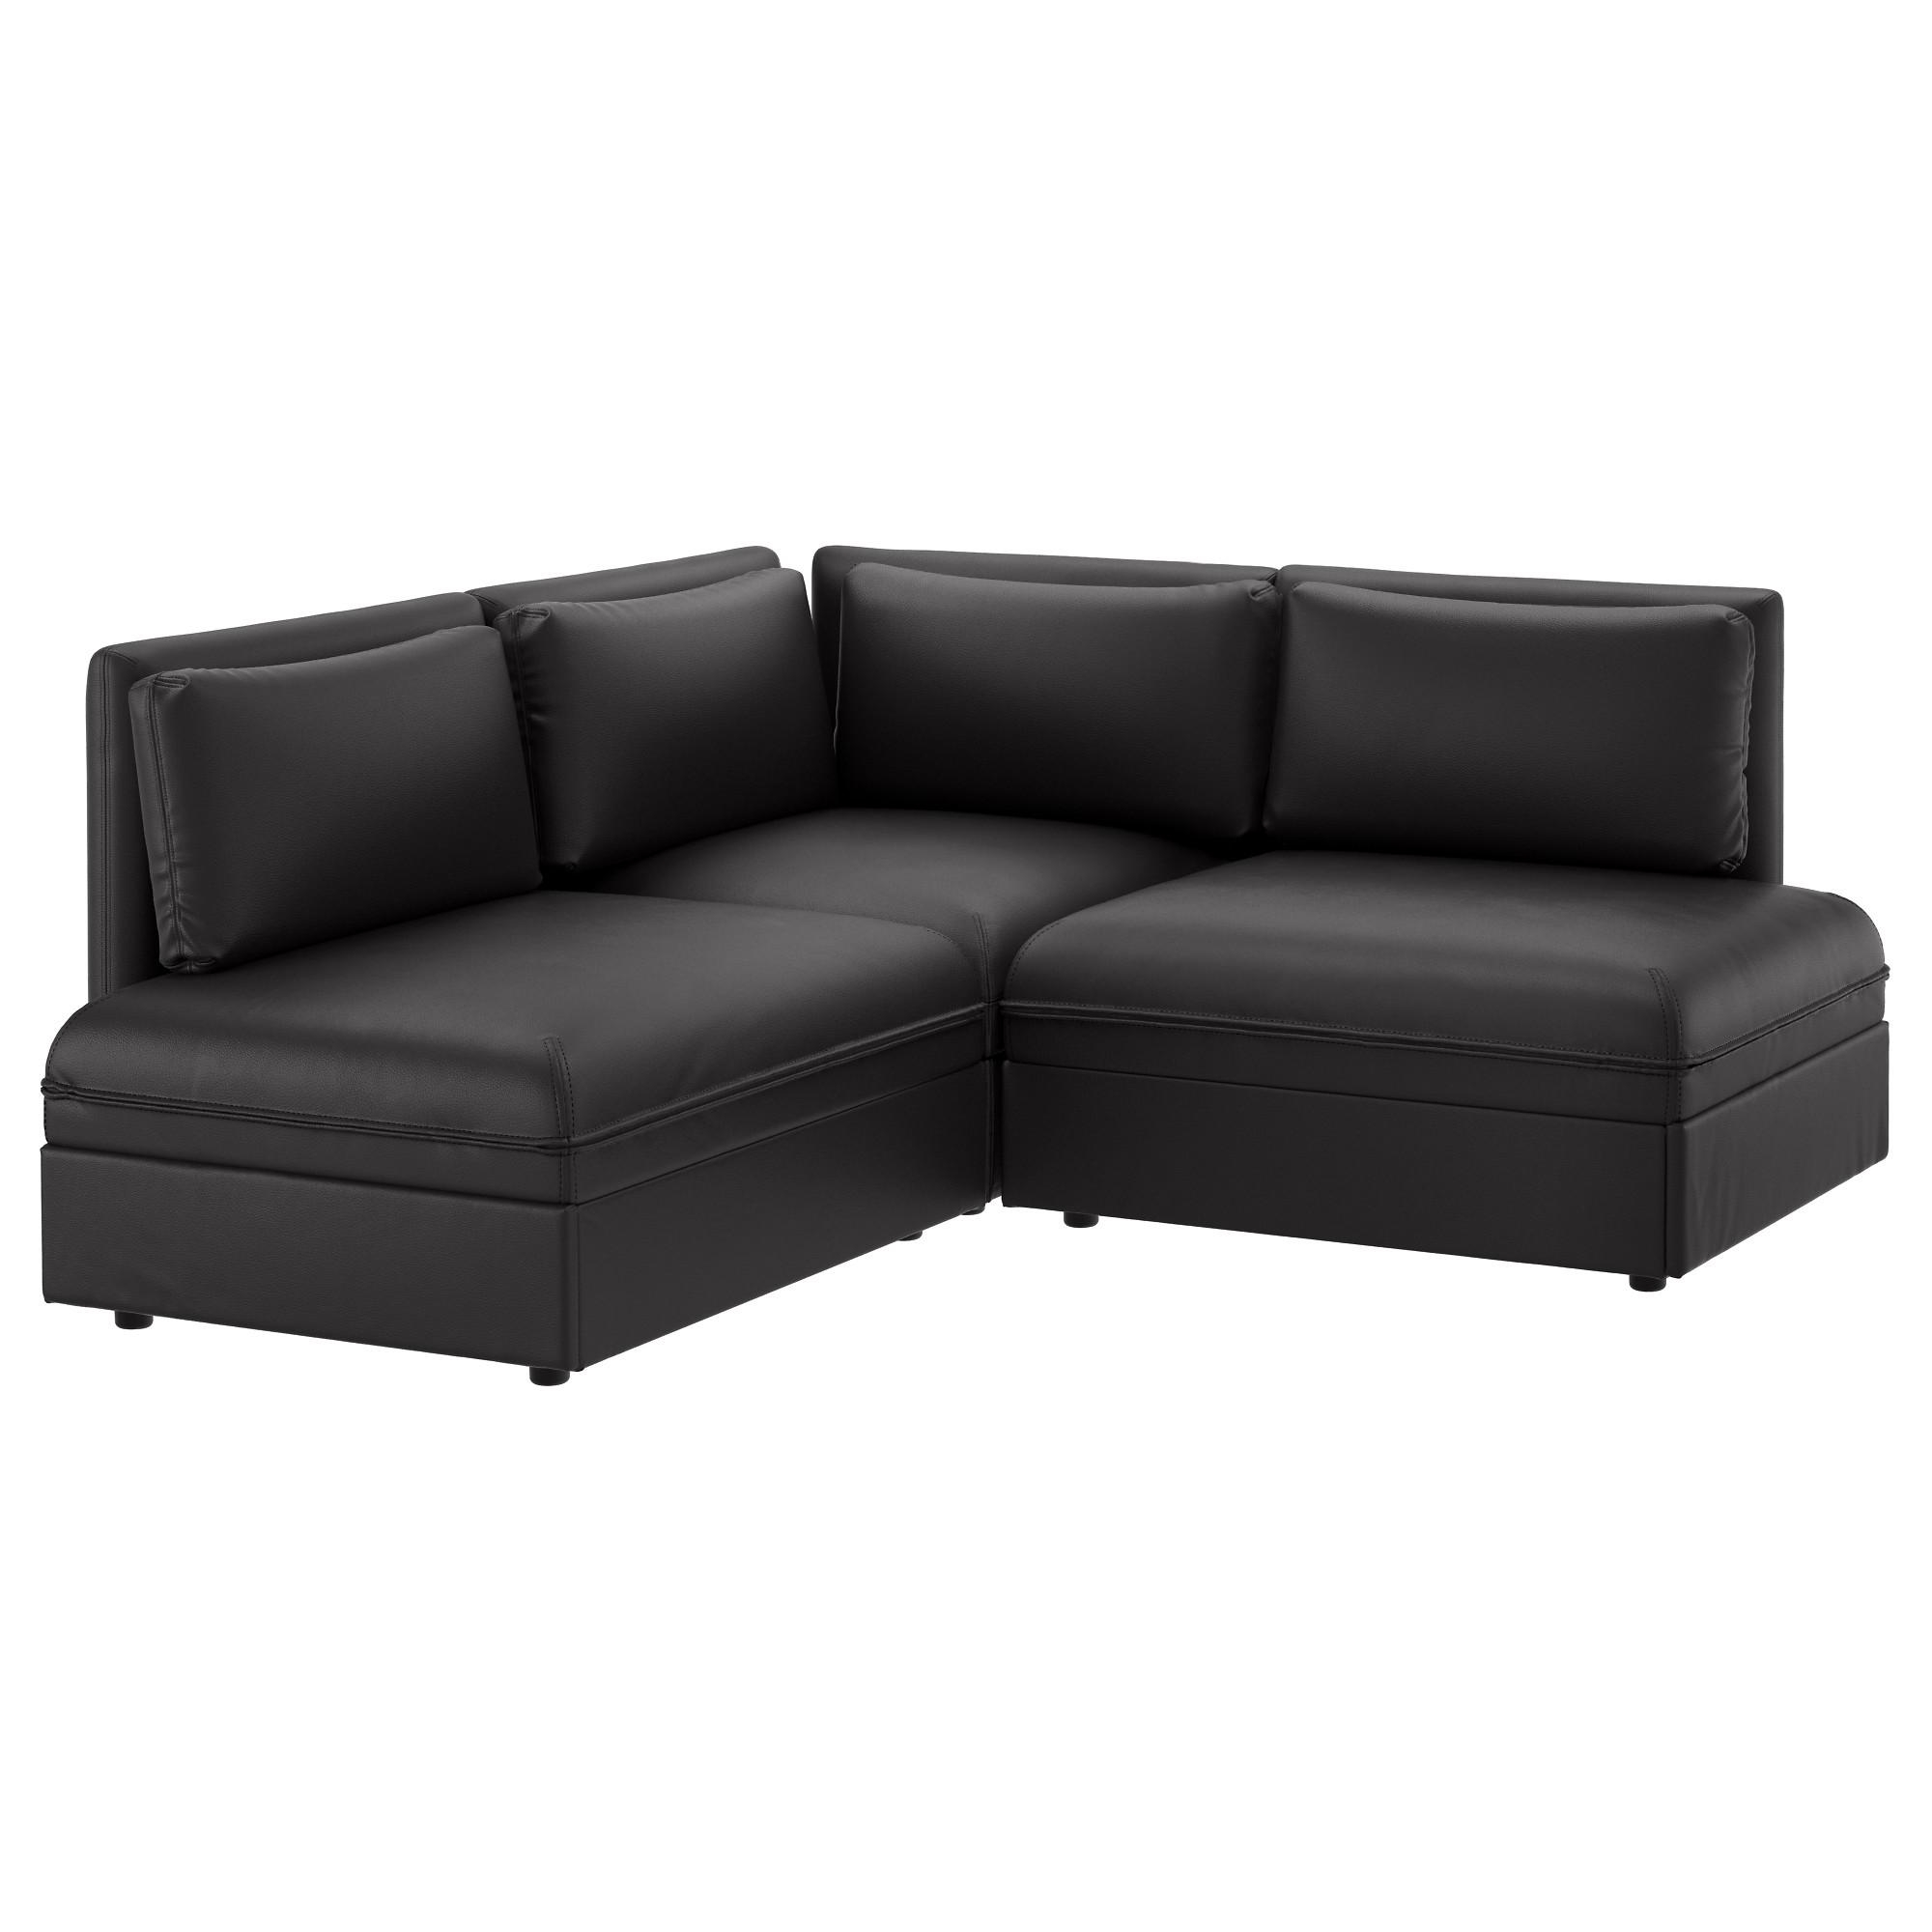 Sofas Center : Storage Behinda Narrow Table Couch With Depthnarrow Pertaining To Narrow Depth Sofas (Image 16 of 20)